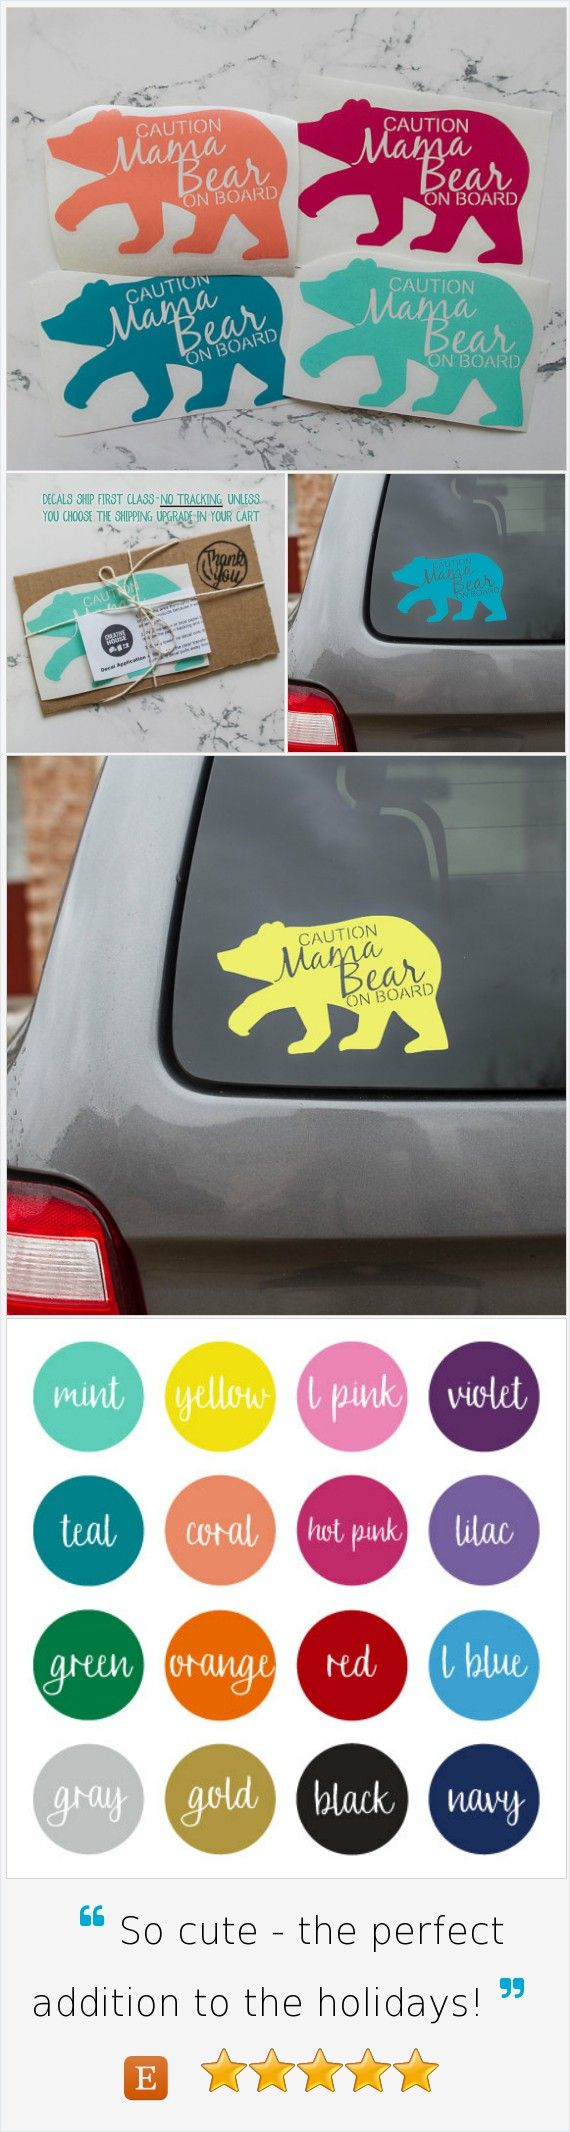 Car decals design your own - Car Decal Caution Mama Bear On Board Car Decal Color Vinyl Sticker Baby